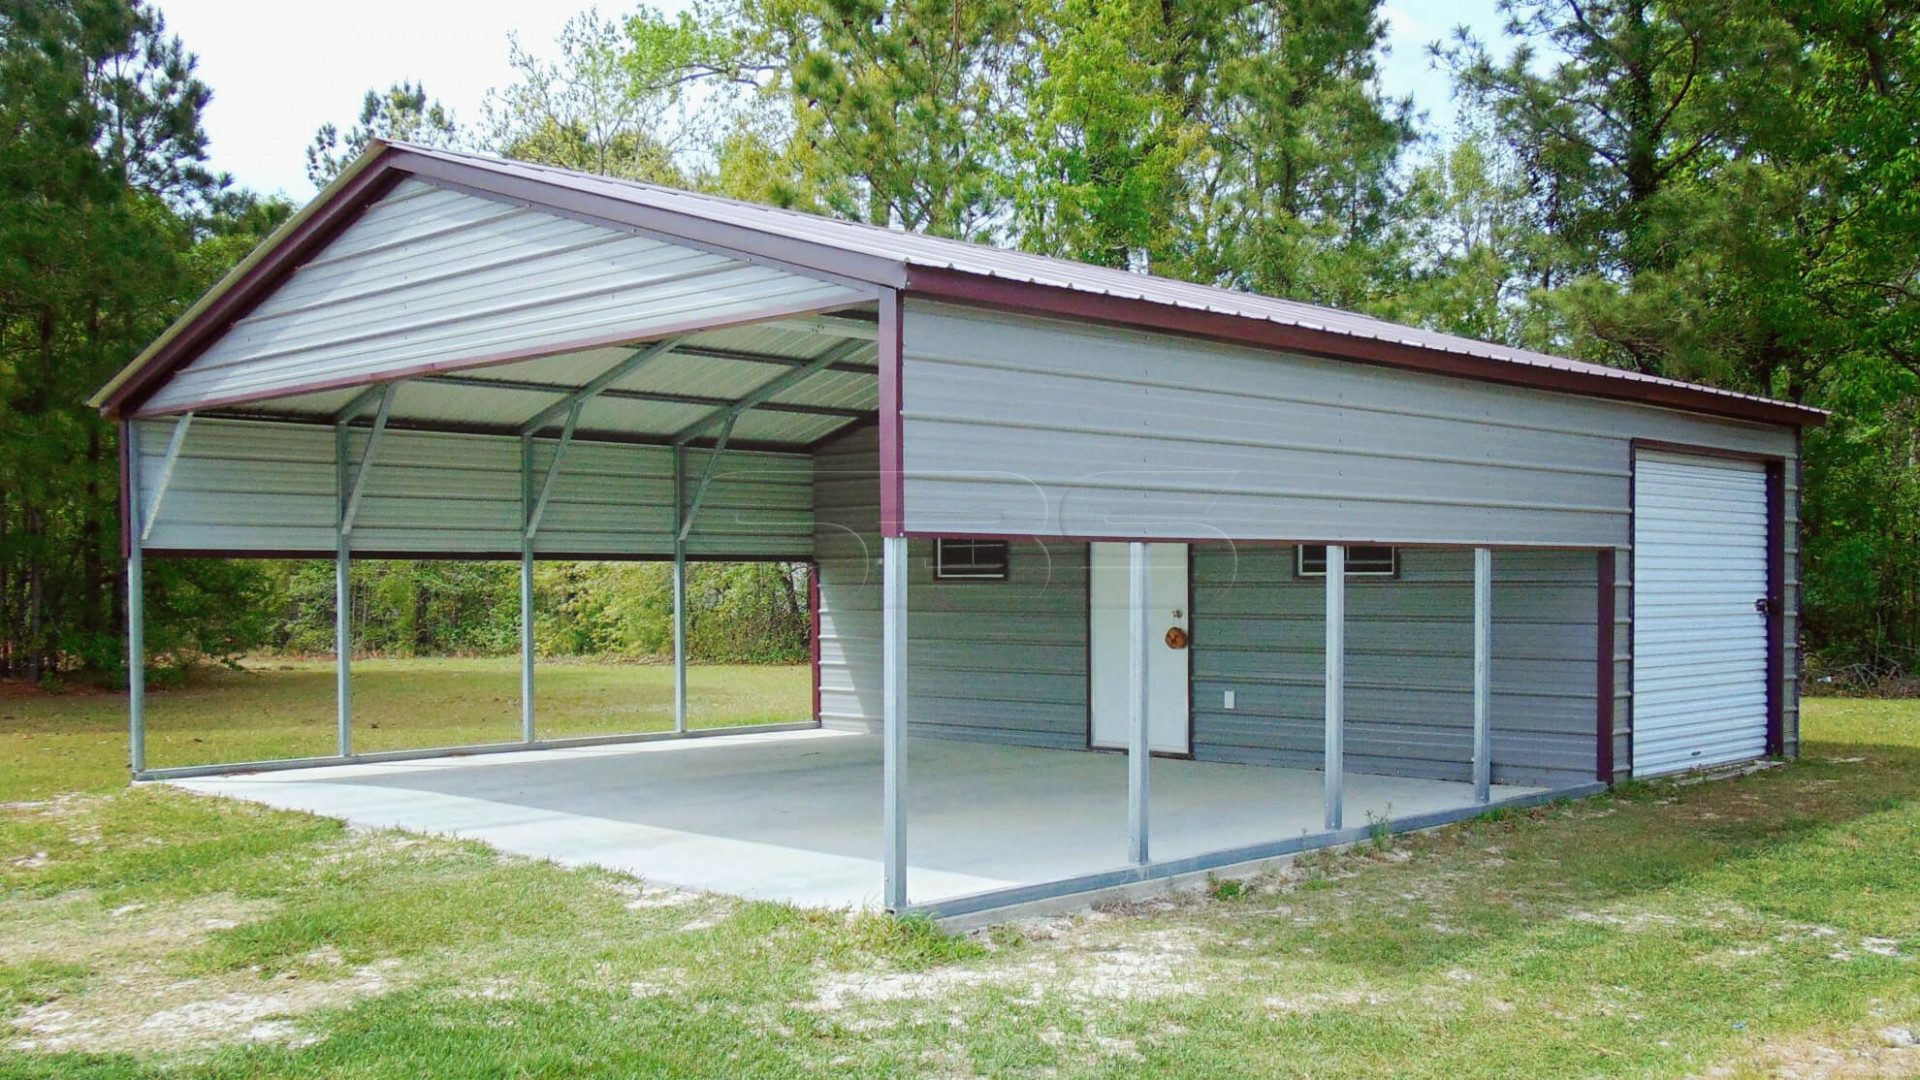 9x9 Metal Combo Carport Unit Carport Garage Metal